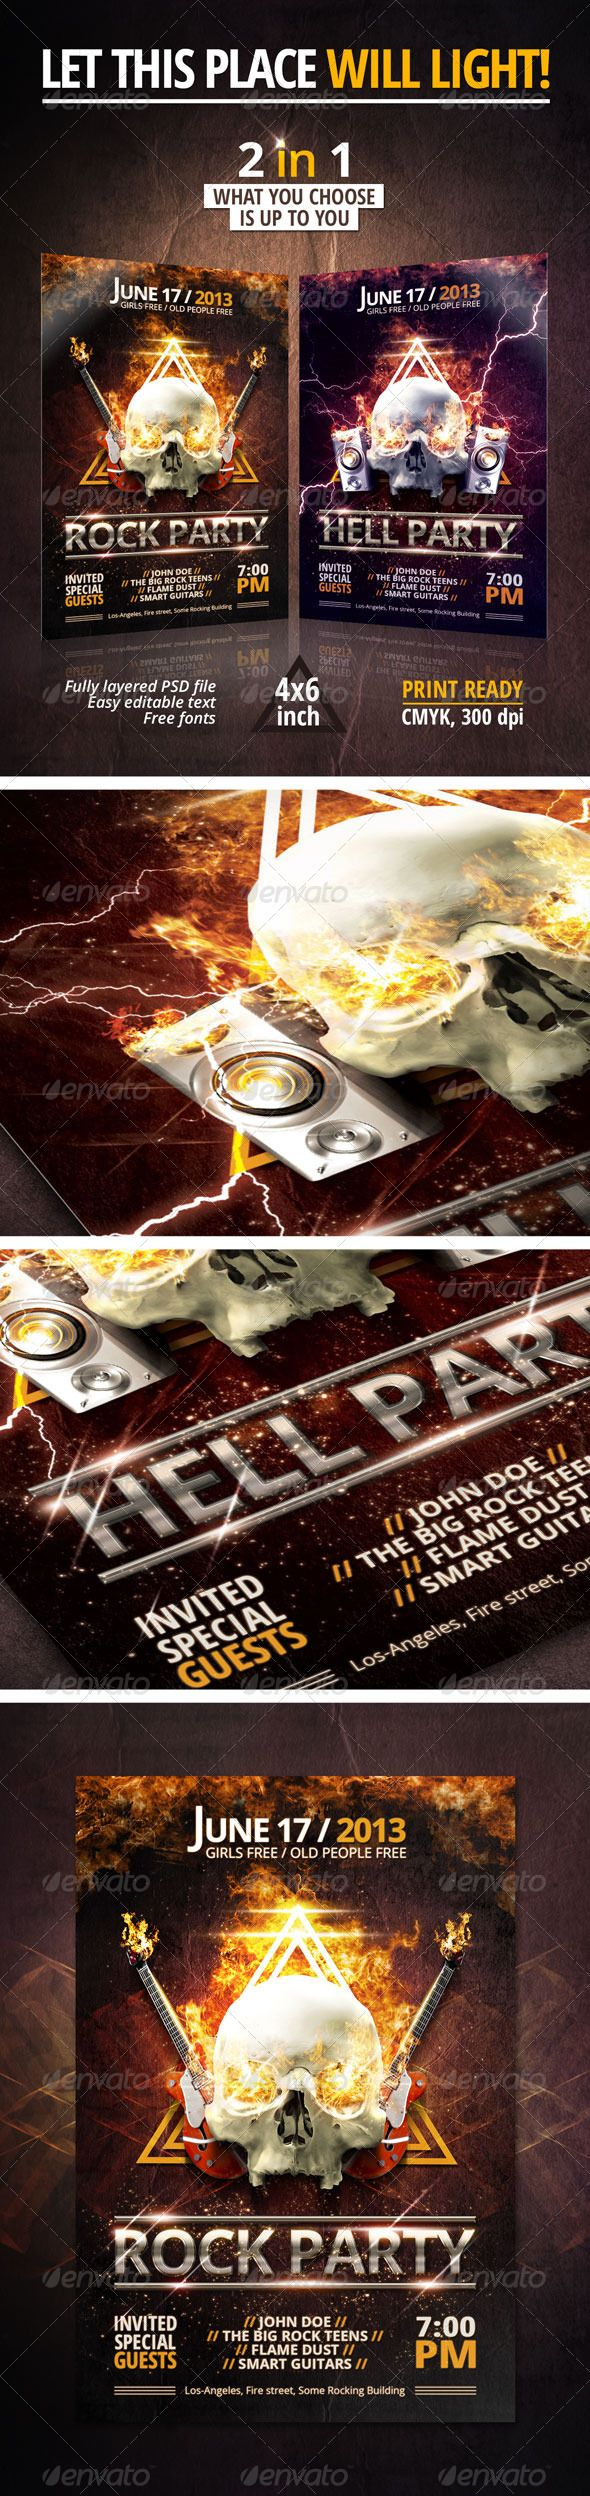 Rock/Hell Party Flyer - Clubs & Parties Events